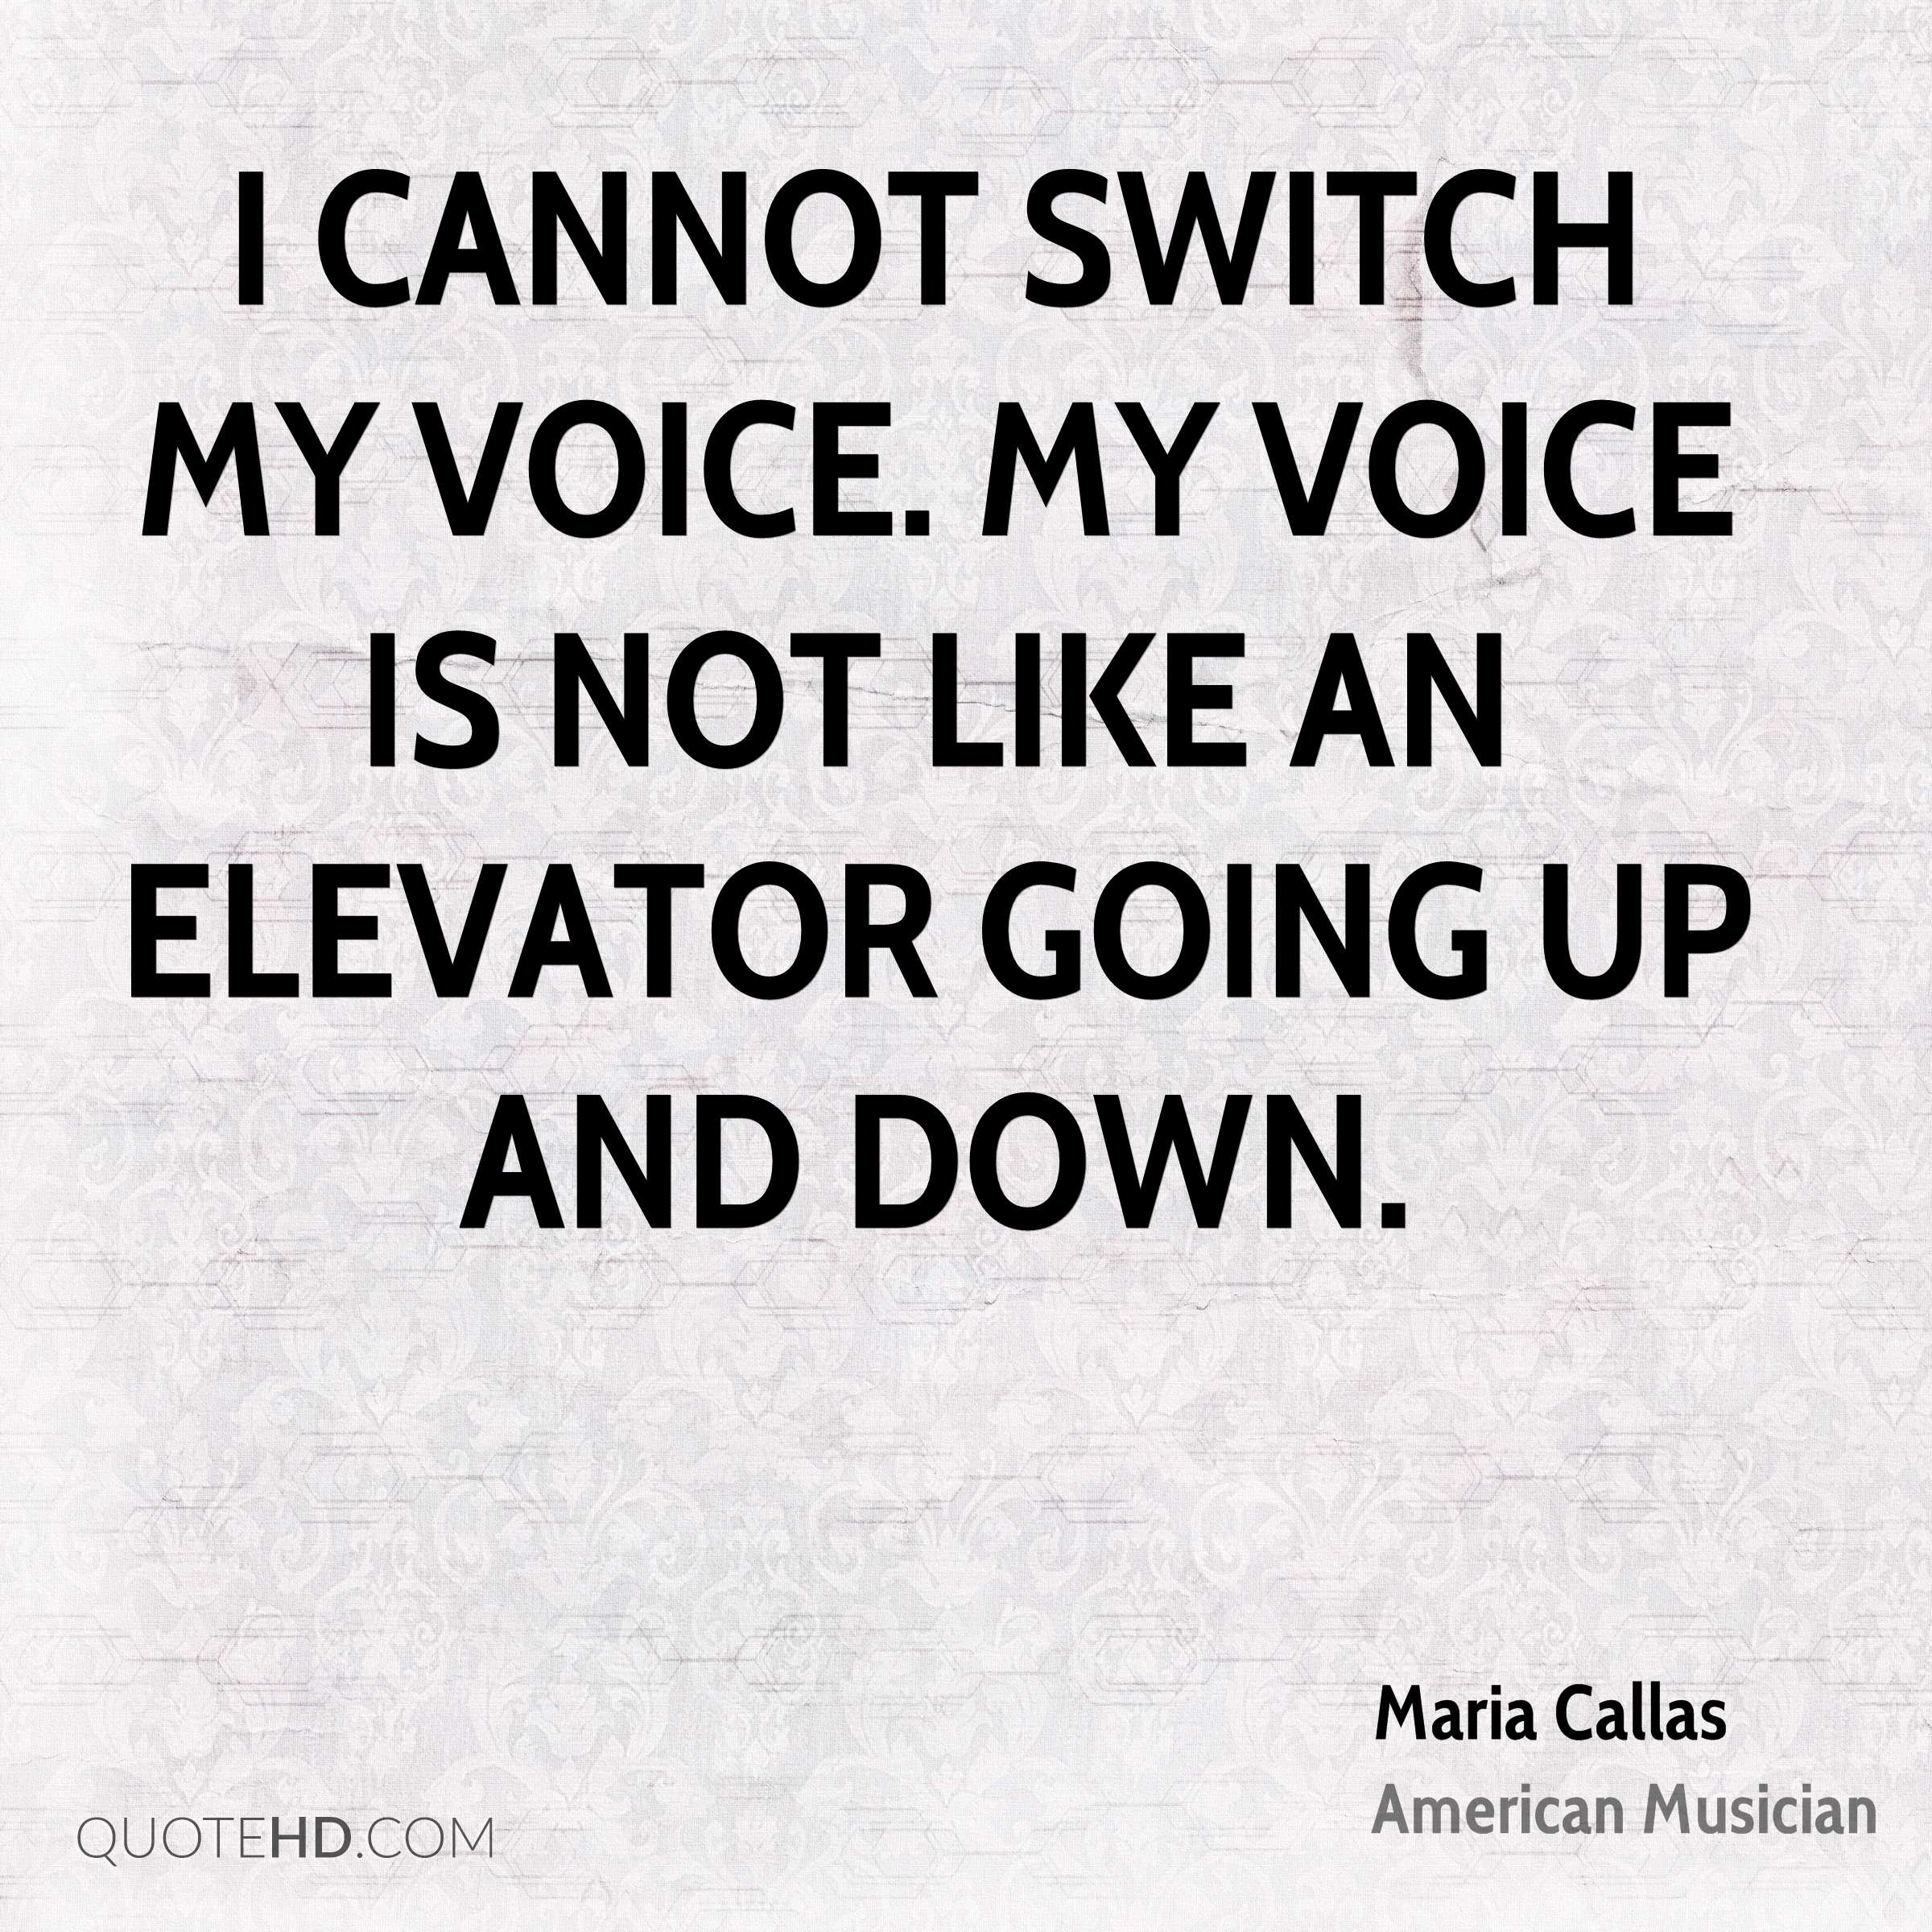 I cannot switch my voice. My voice is not like an elevator going up and down.